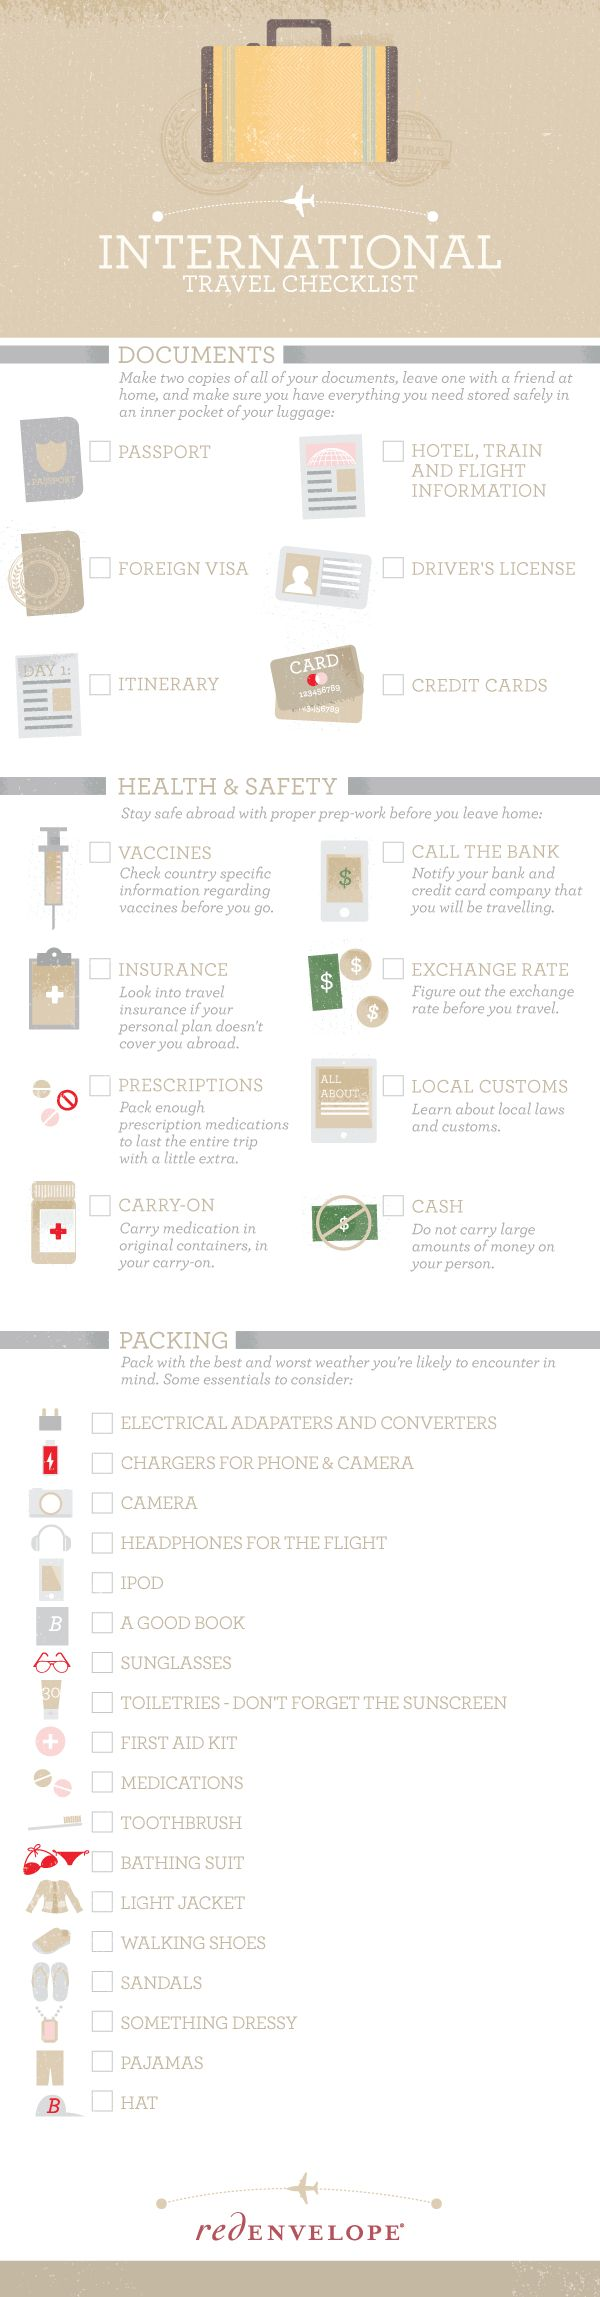 International Travel Checklist   #infographic #Travel #Checklist